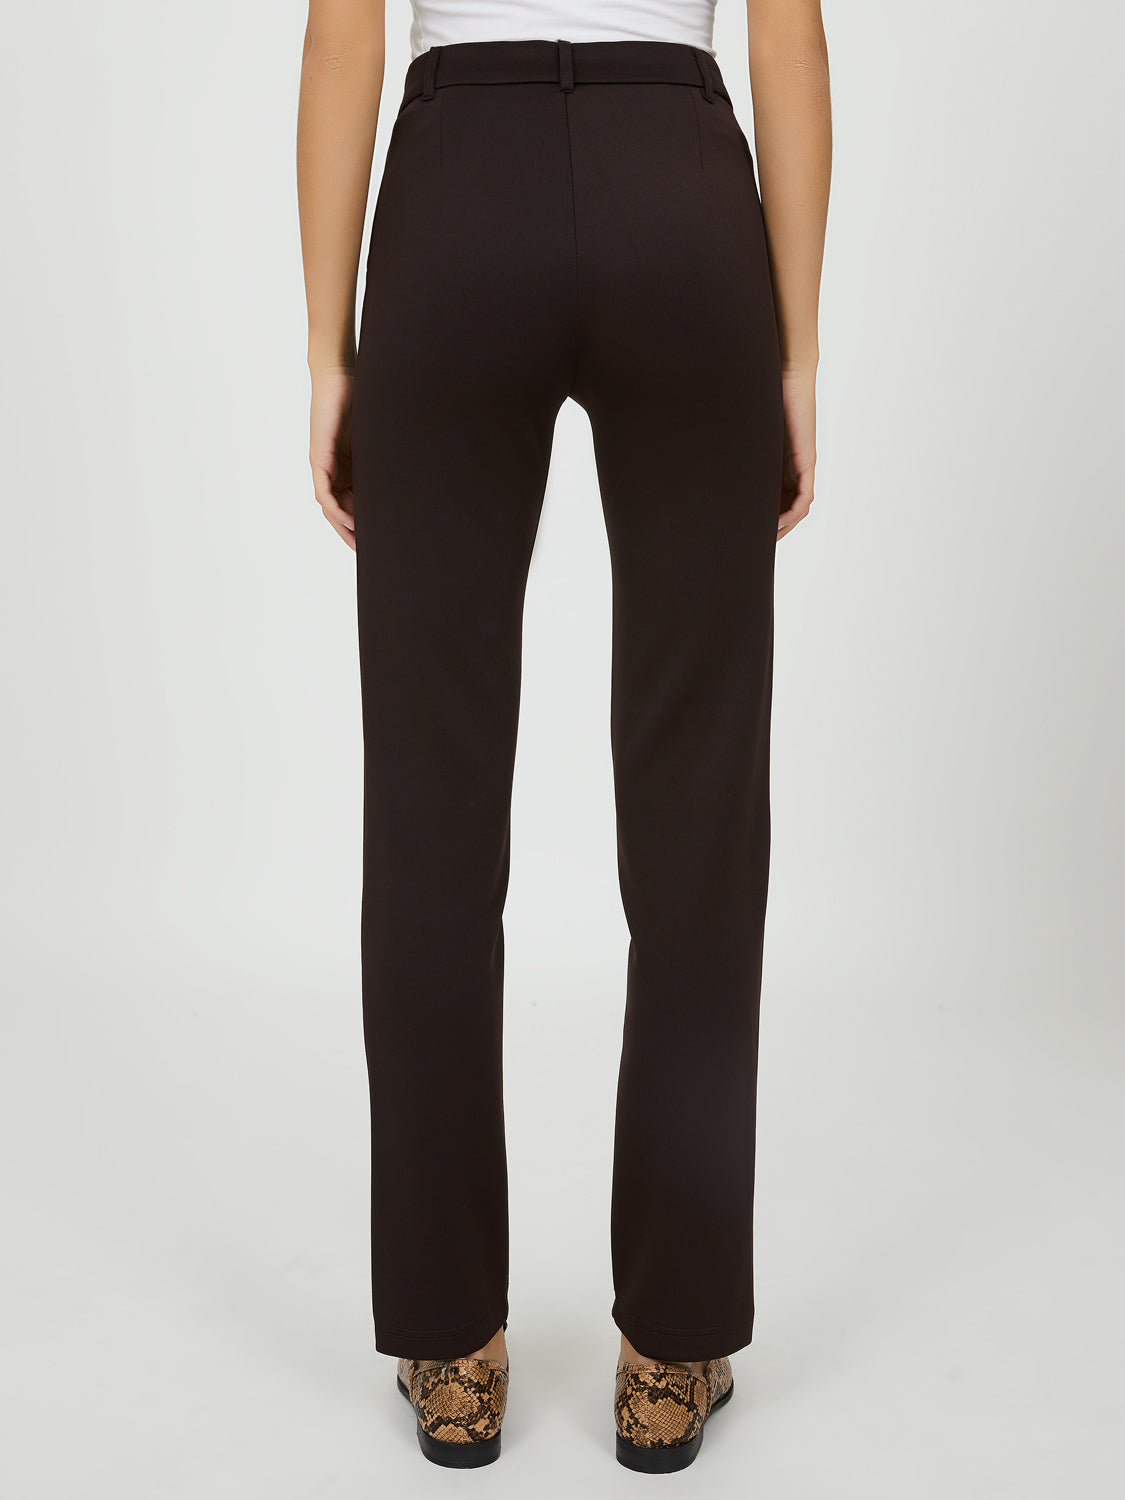 One-Button Closure Skinny Leg Pants